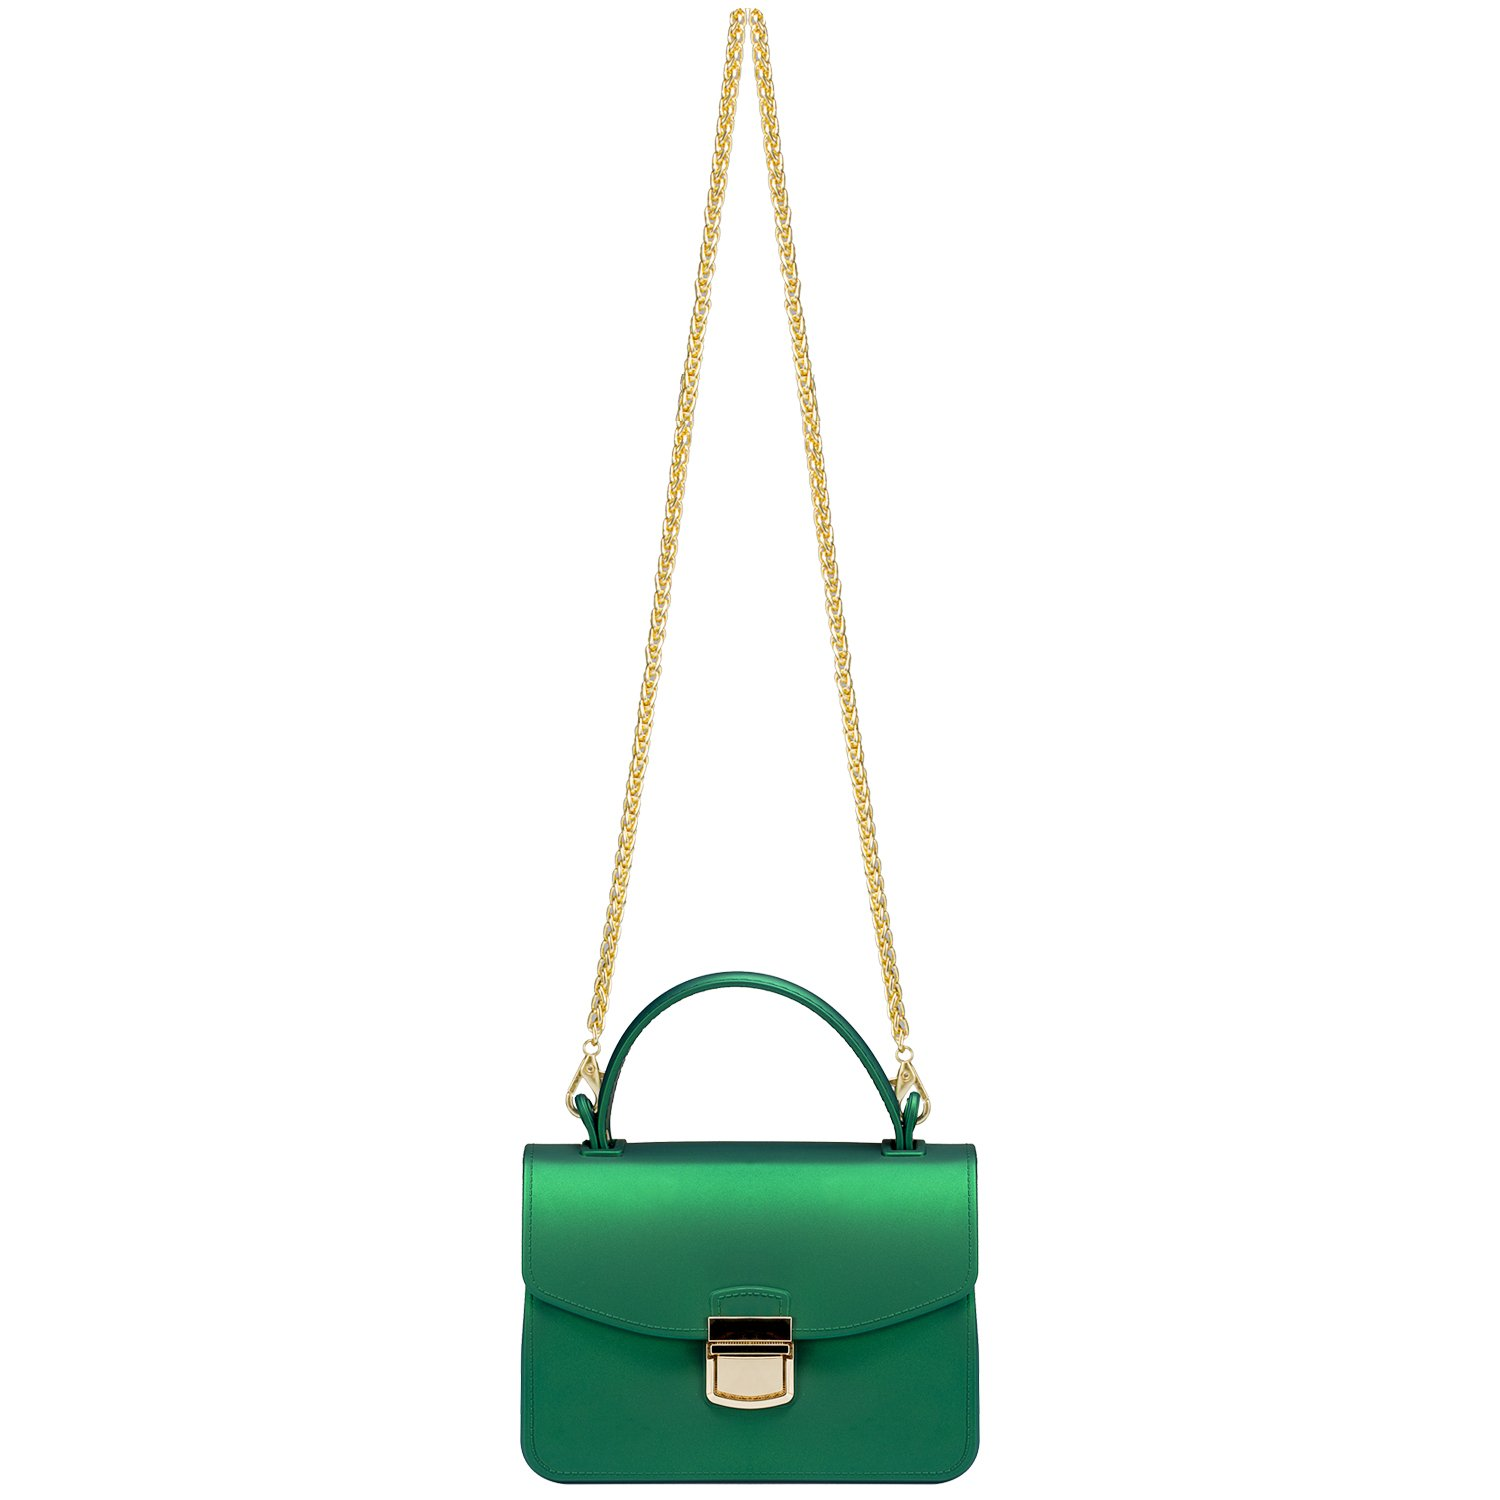 Small Top Handle Handbags Jelly Satchel Bags for Women Tote Purse - Green by Chrysansmile (Image #5)